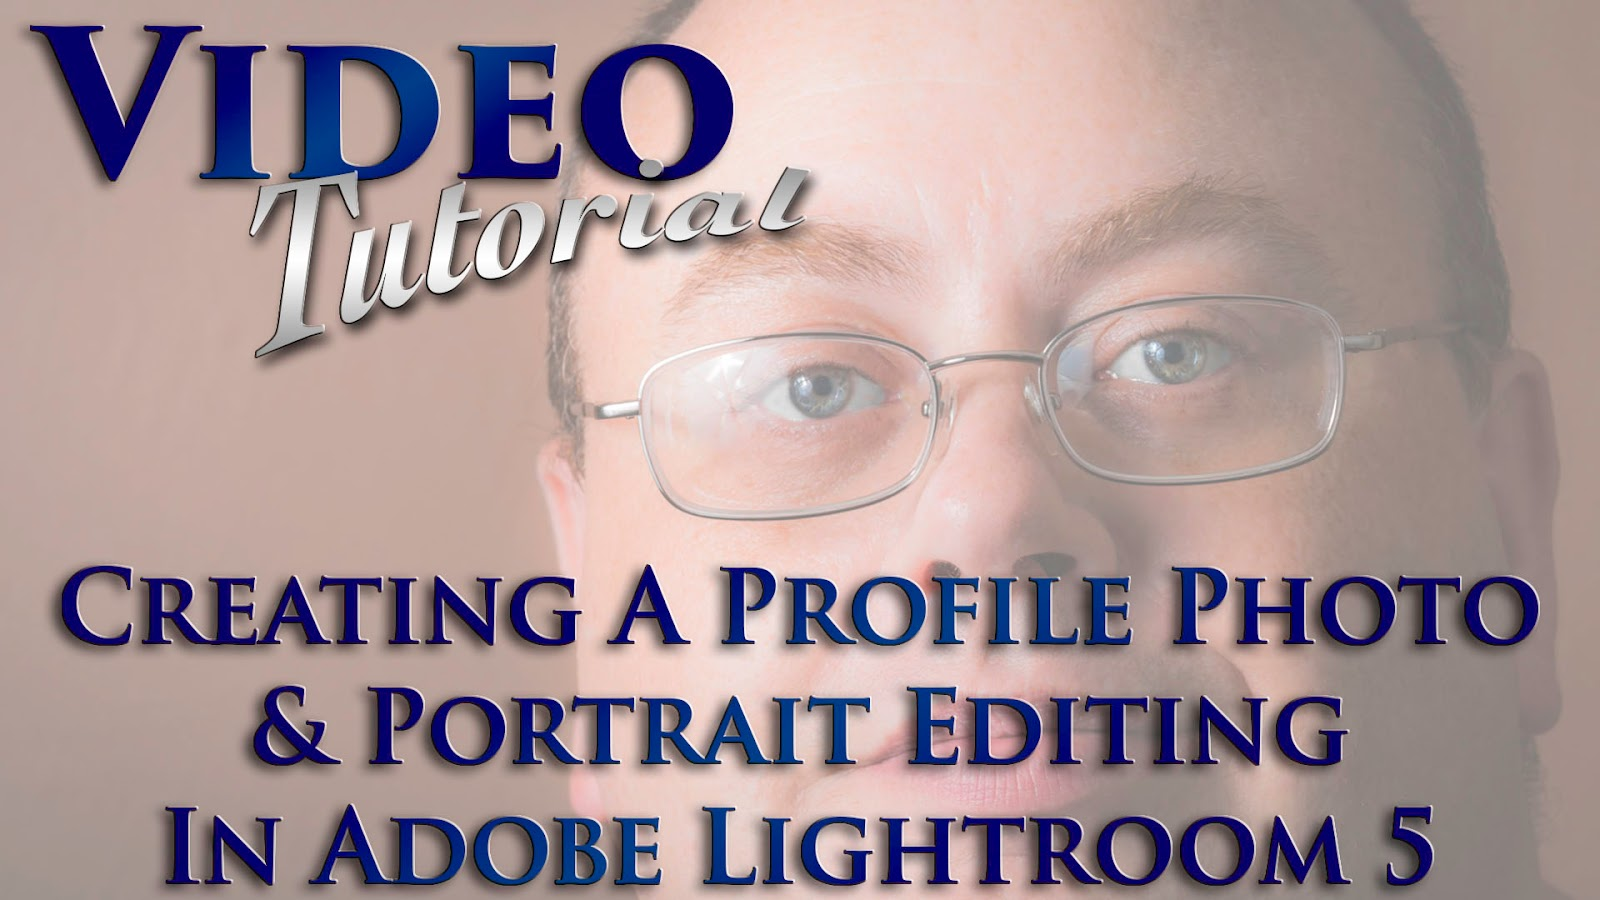 Creating A Profile Photo & Portrait Editing In Adobe Lightroom 5